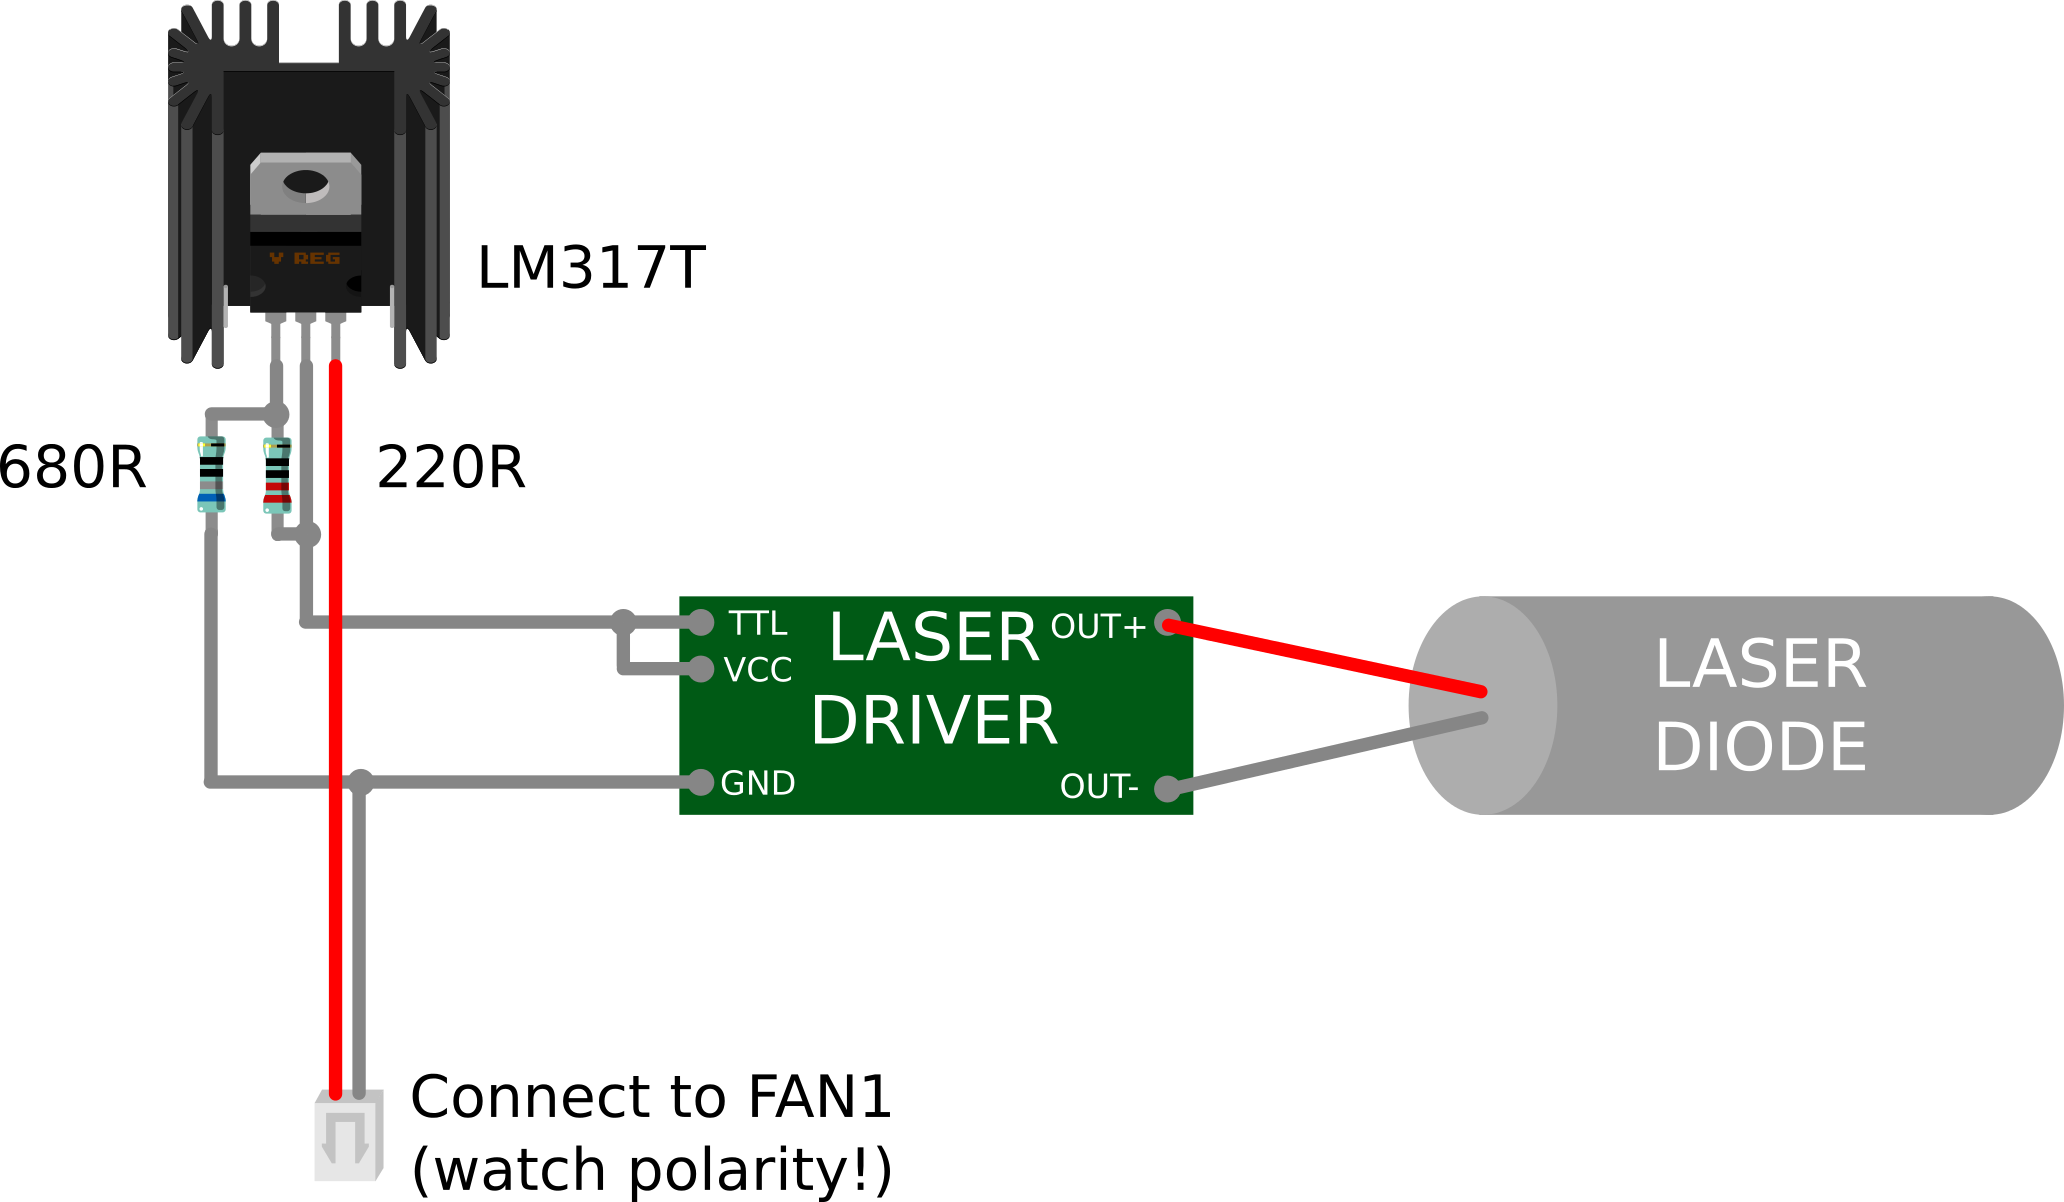 ... connected to the input of the laser driver, and the output of the laser  driver is connected to the laser diode. Below you can see the full schematic :